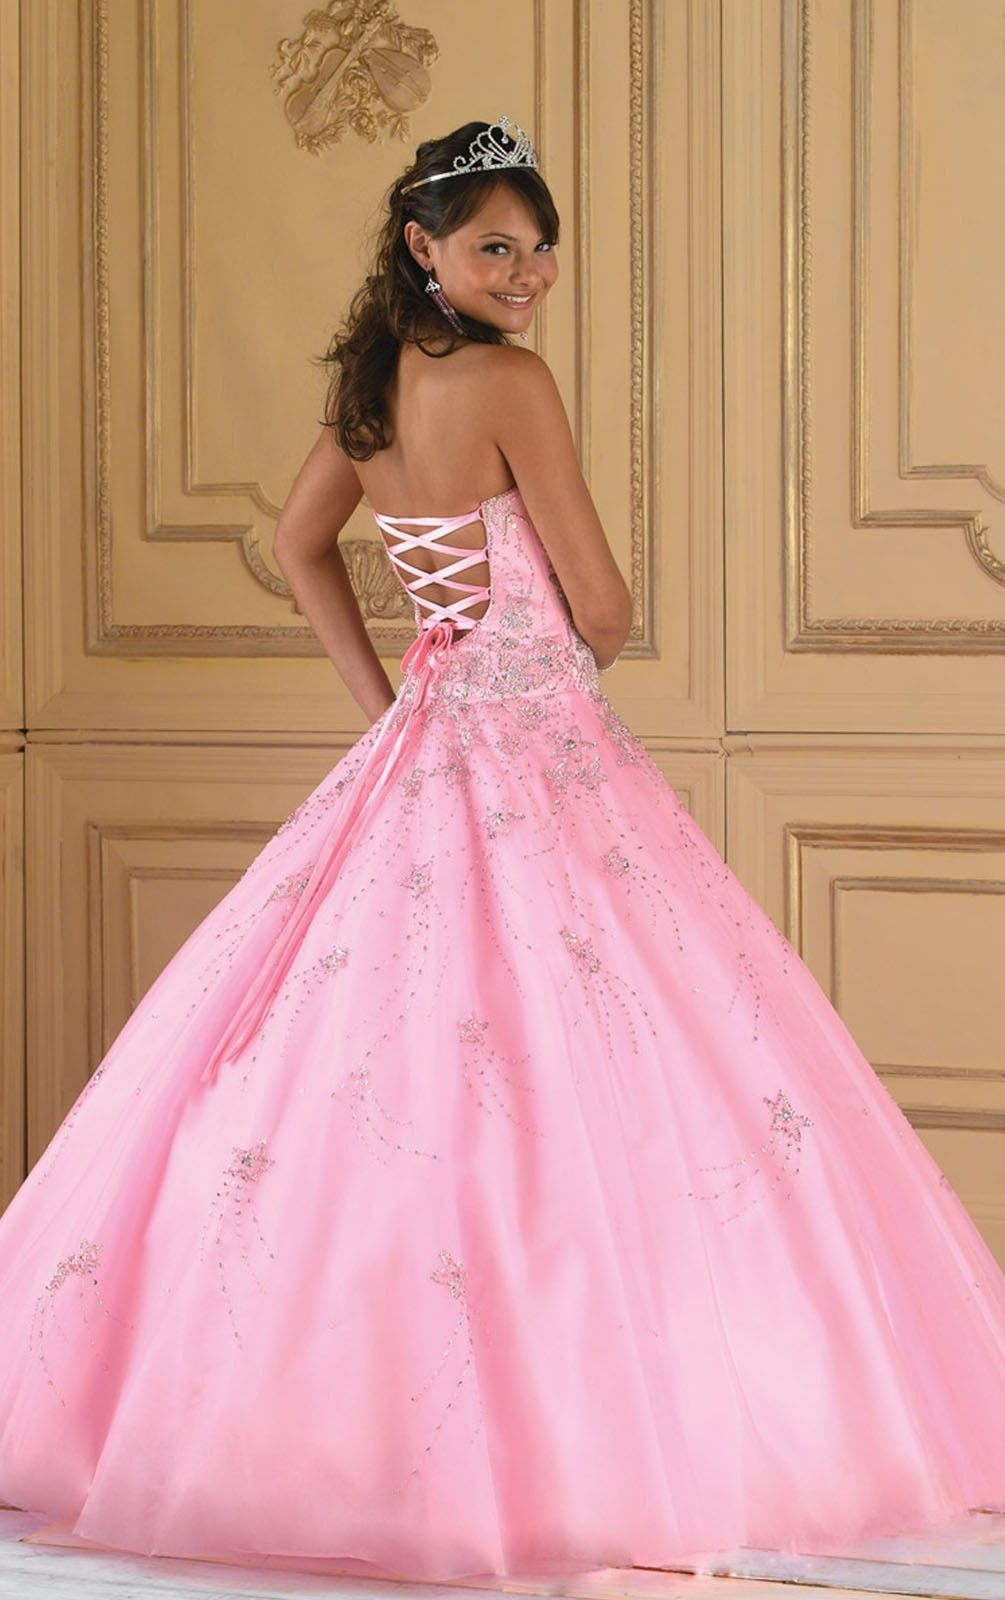 Tumblr | Dresses | Pinterest | Strapless dress, Classic and Pink ...